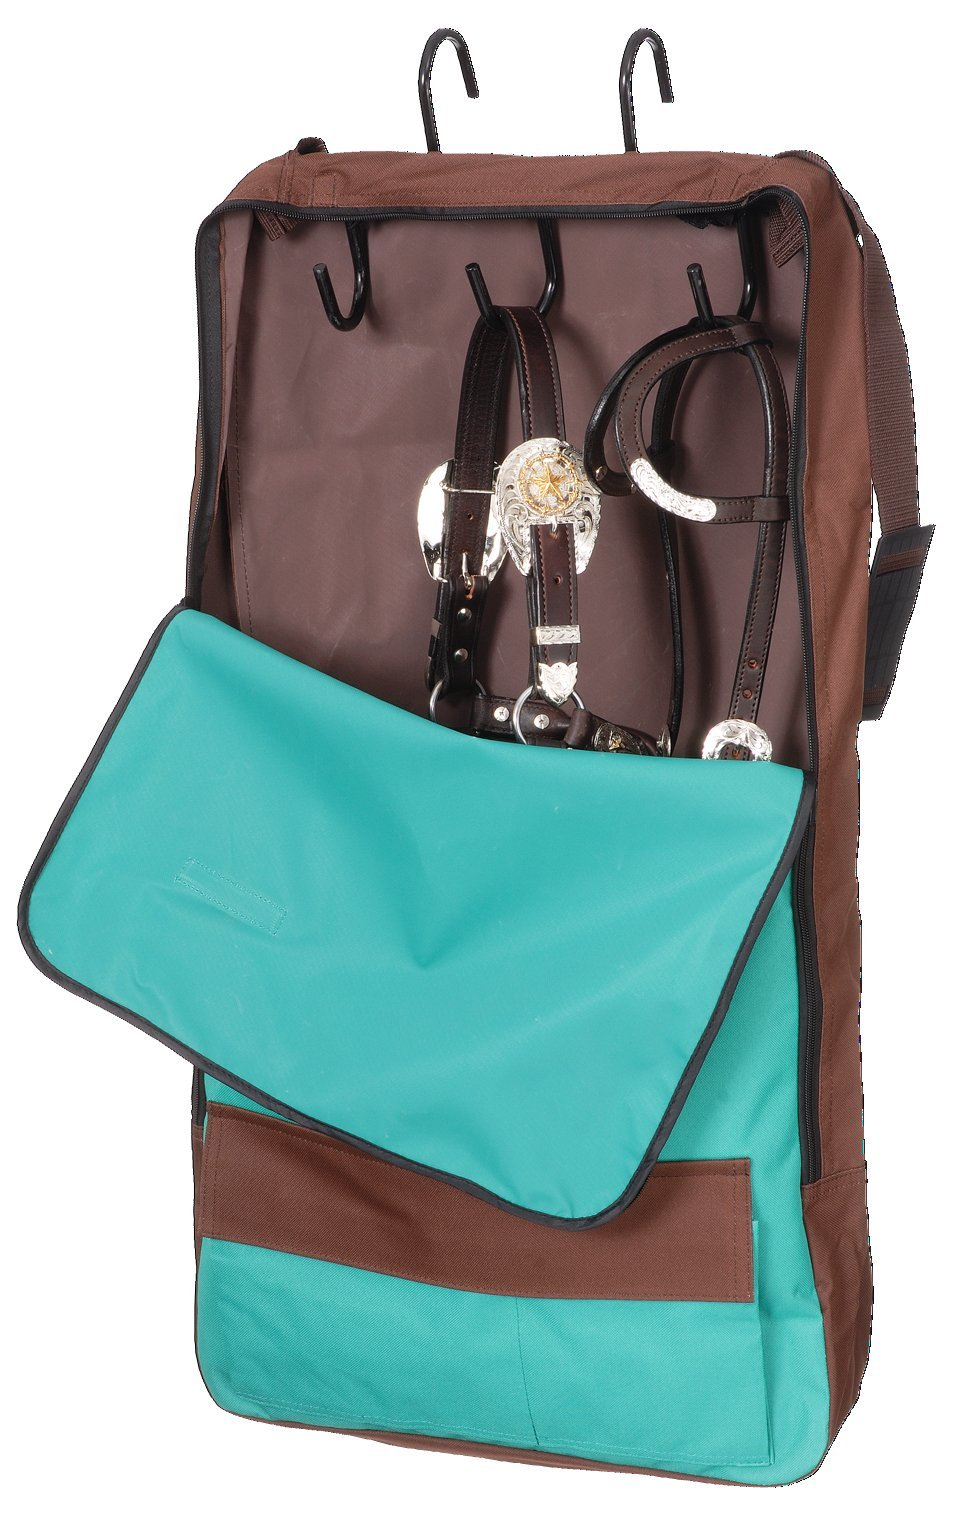 Tough-1 Bridle/Halter w/ 3 Prong Tack Rack,color:Turquoise/brown by Tough 1